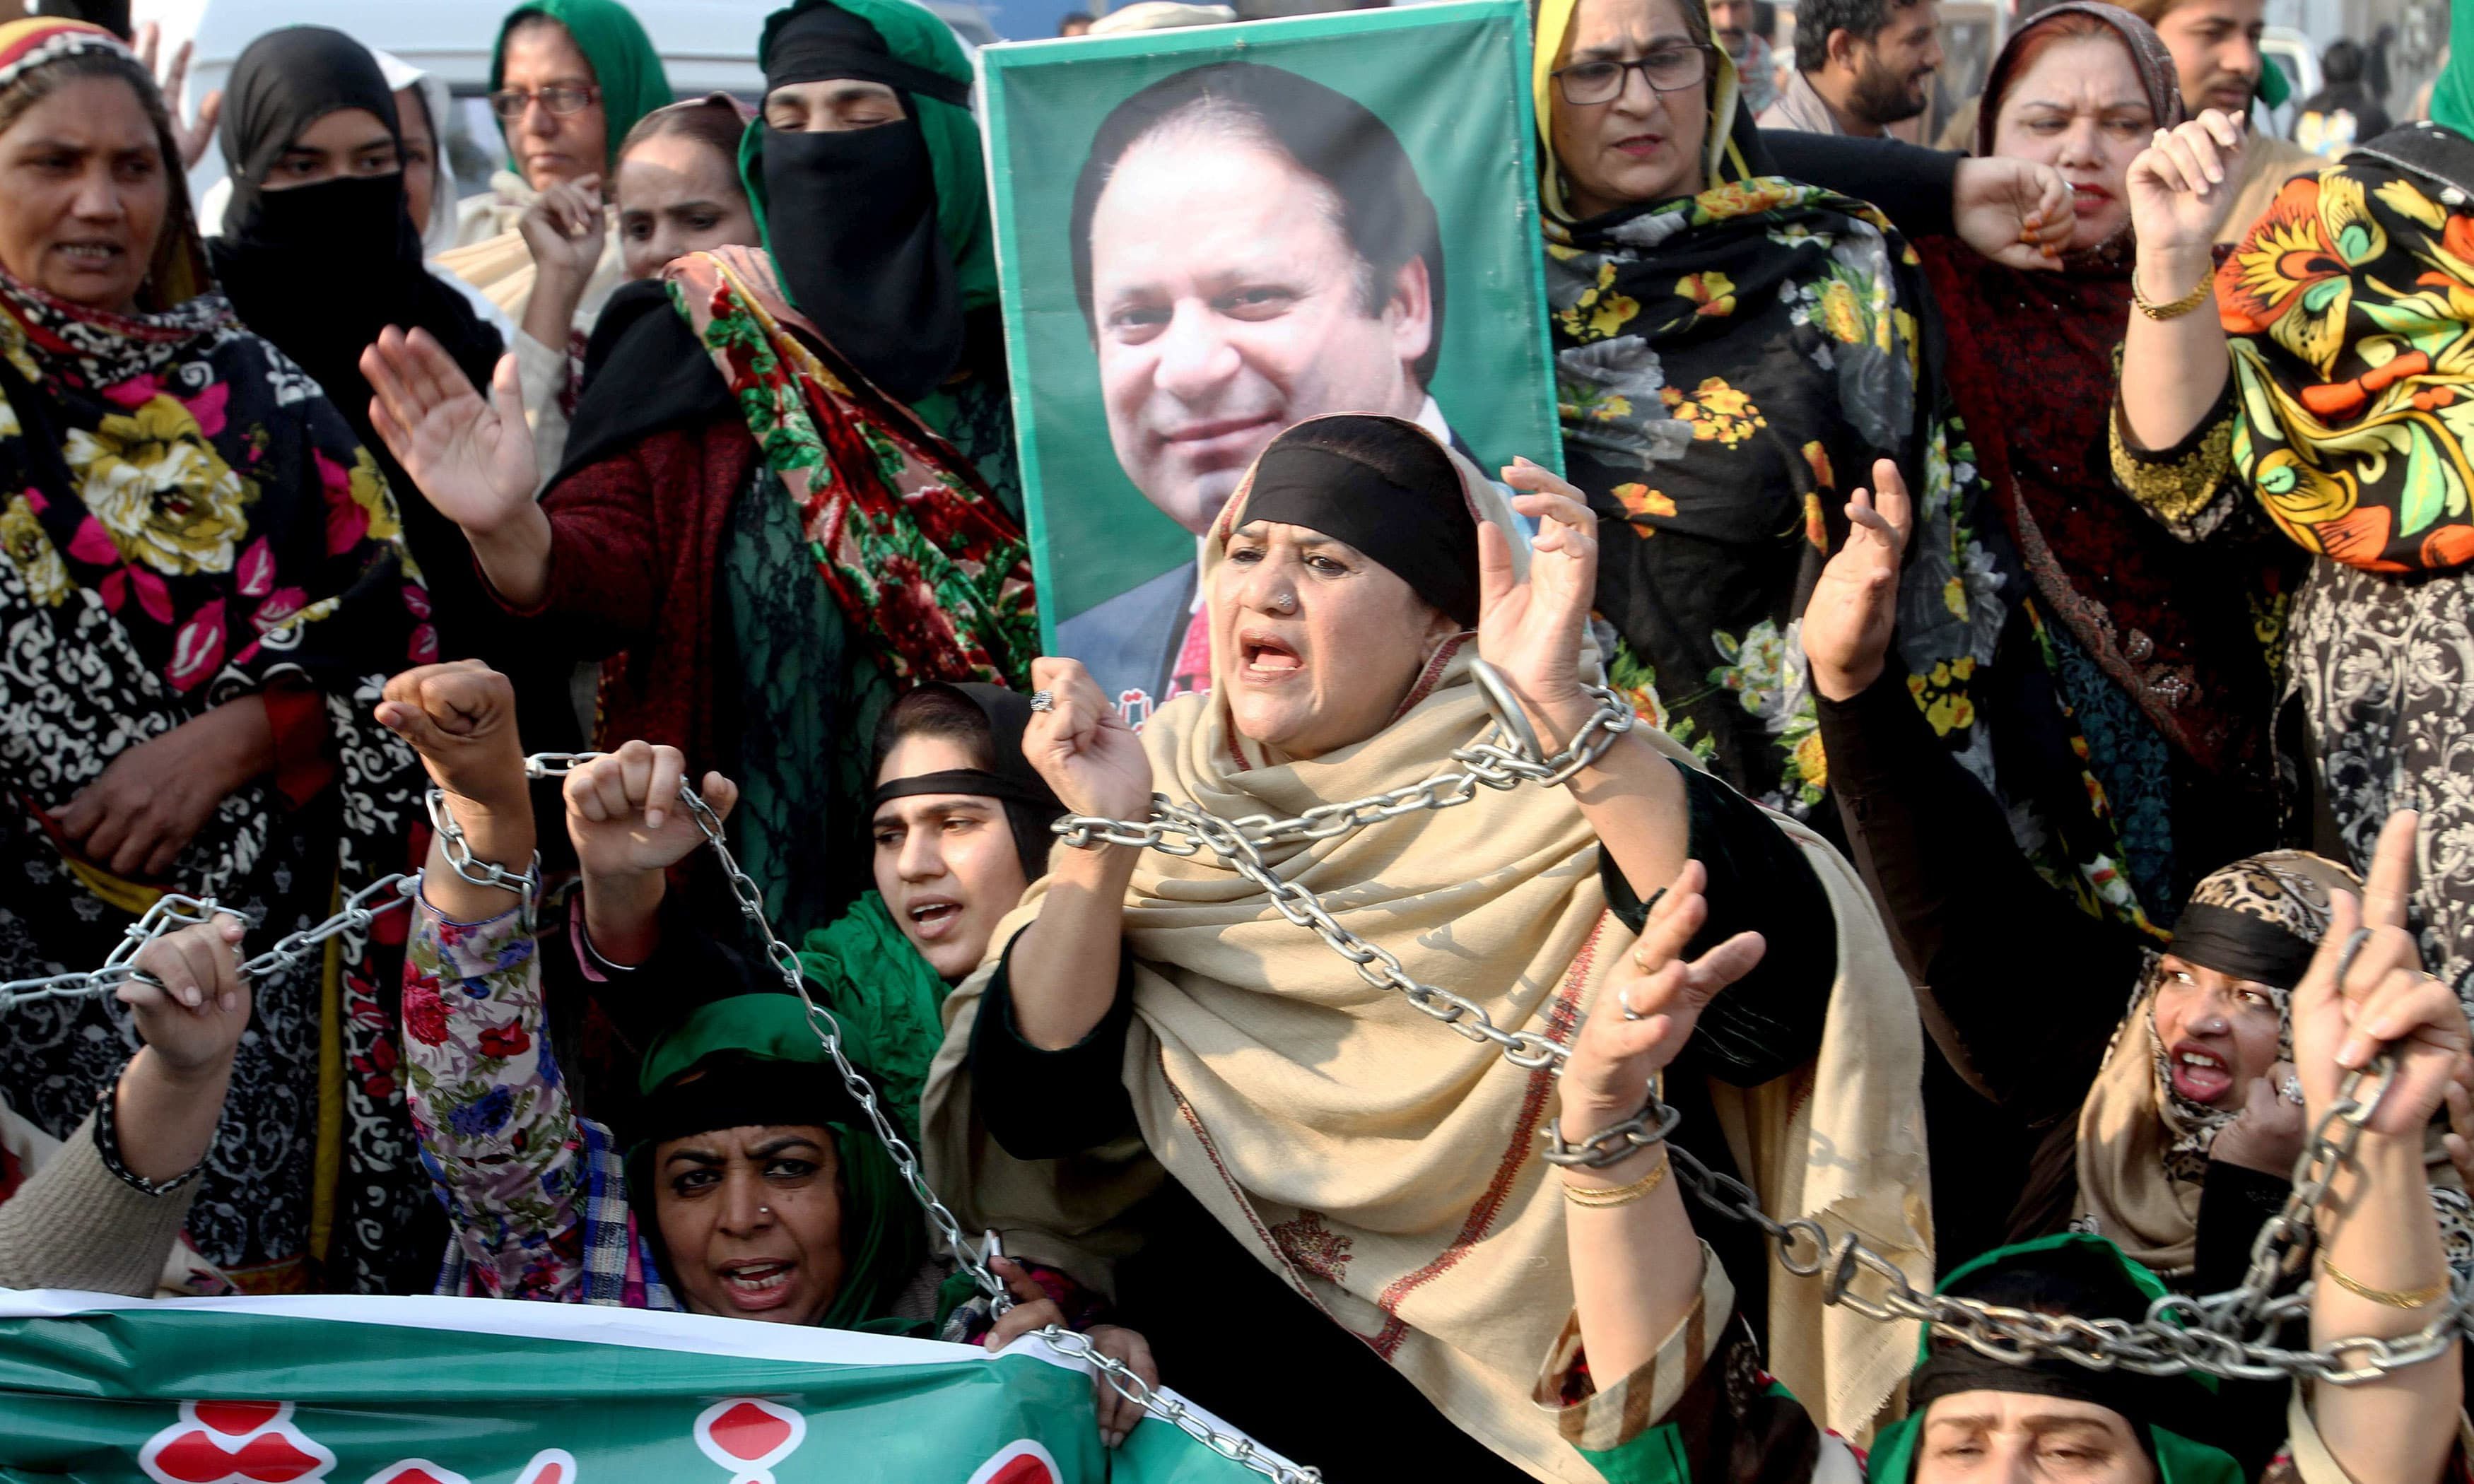 An anti-graft tribunal sentenced former prime minister Nawaz Sharif to seven years in prison for corruption, drawing criticism from his party. —AFP